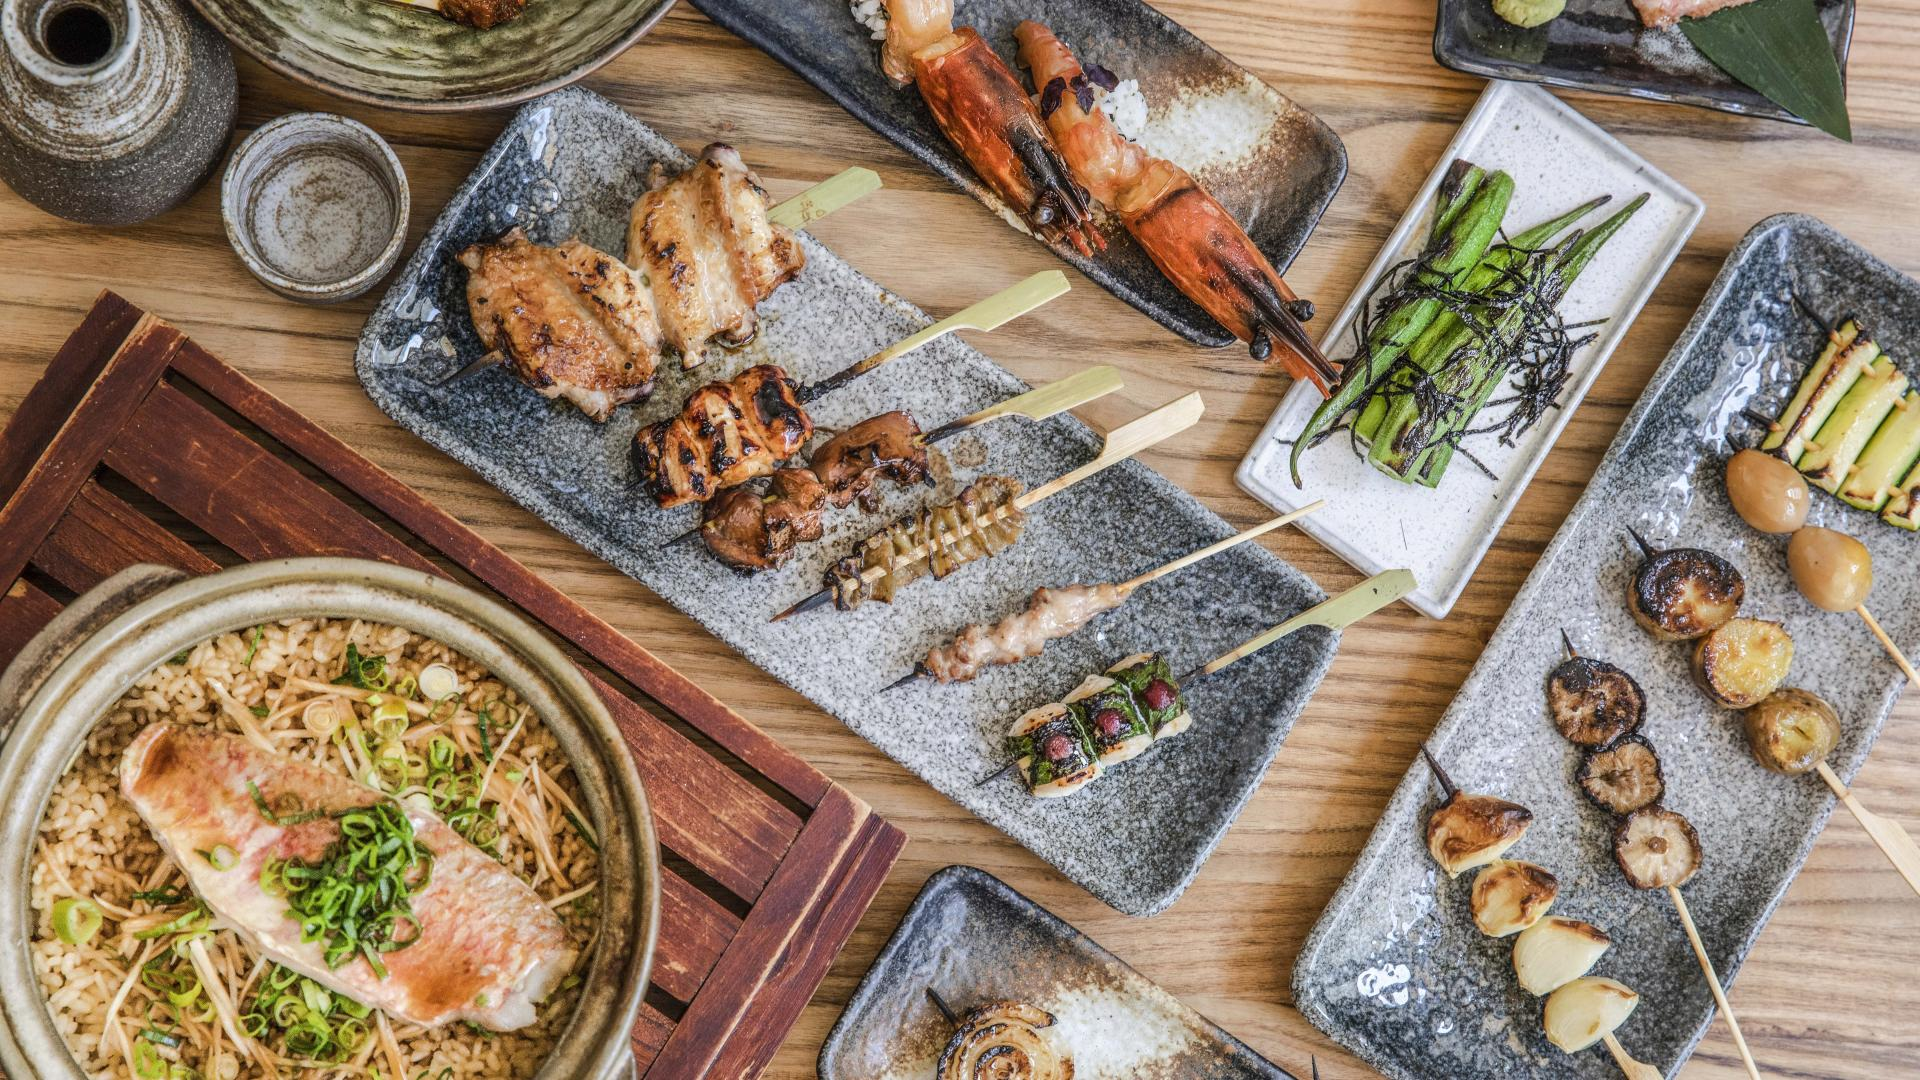 This is a photo of yakitori skewers and small plates from Junsei, Marylebone.